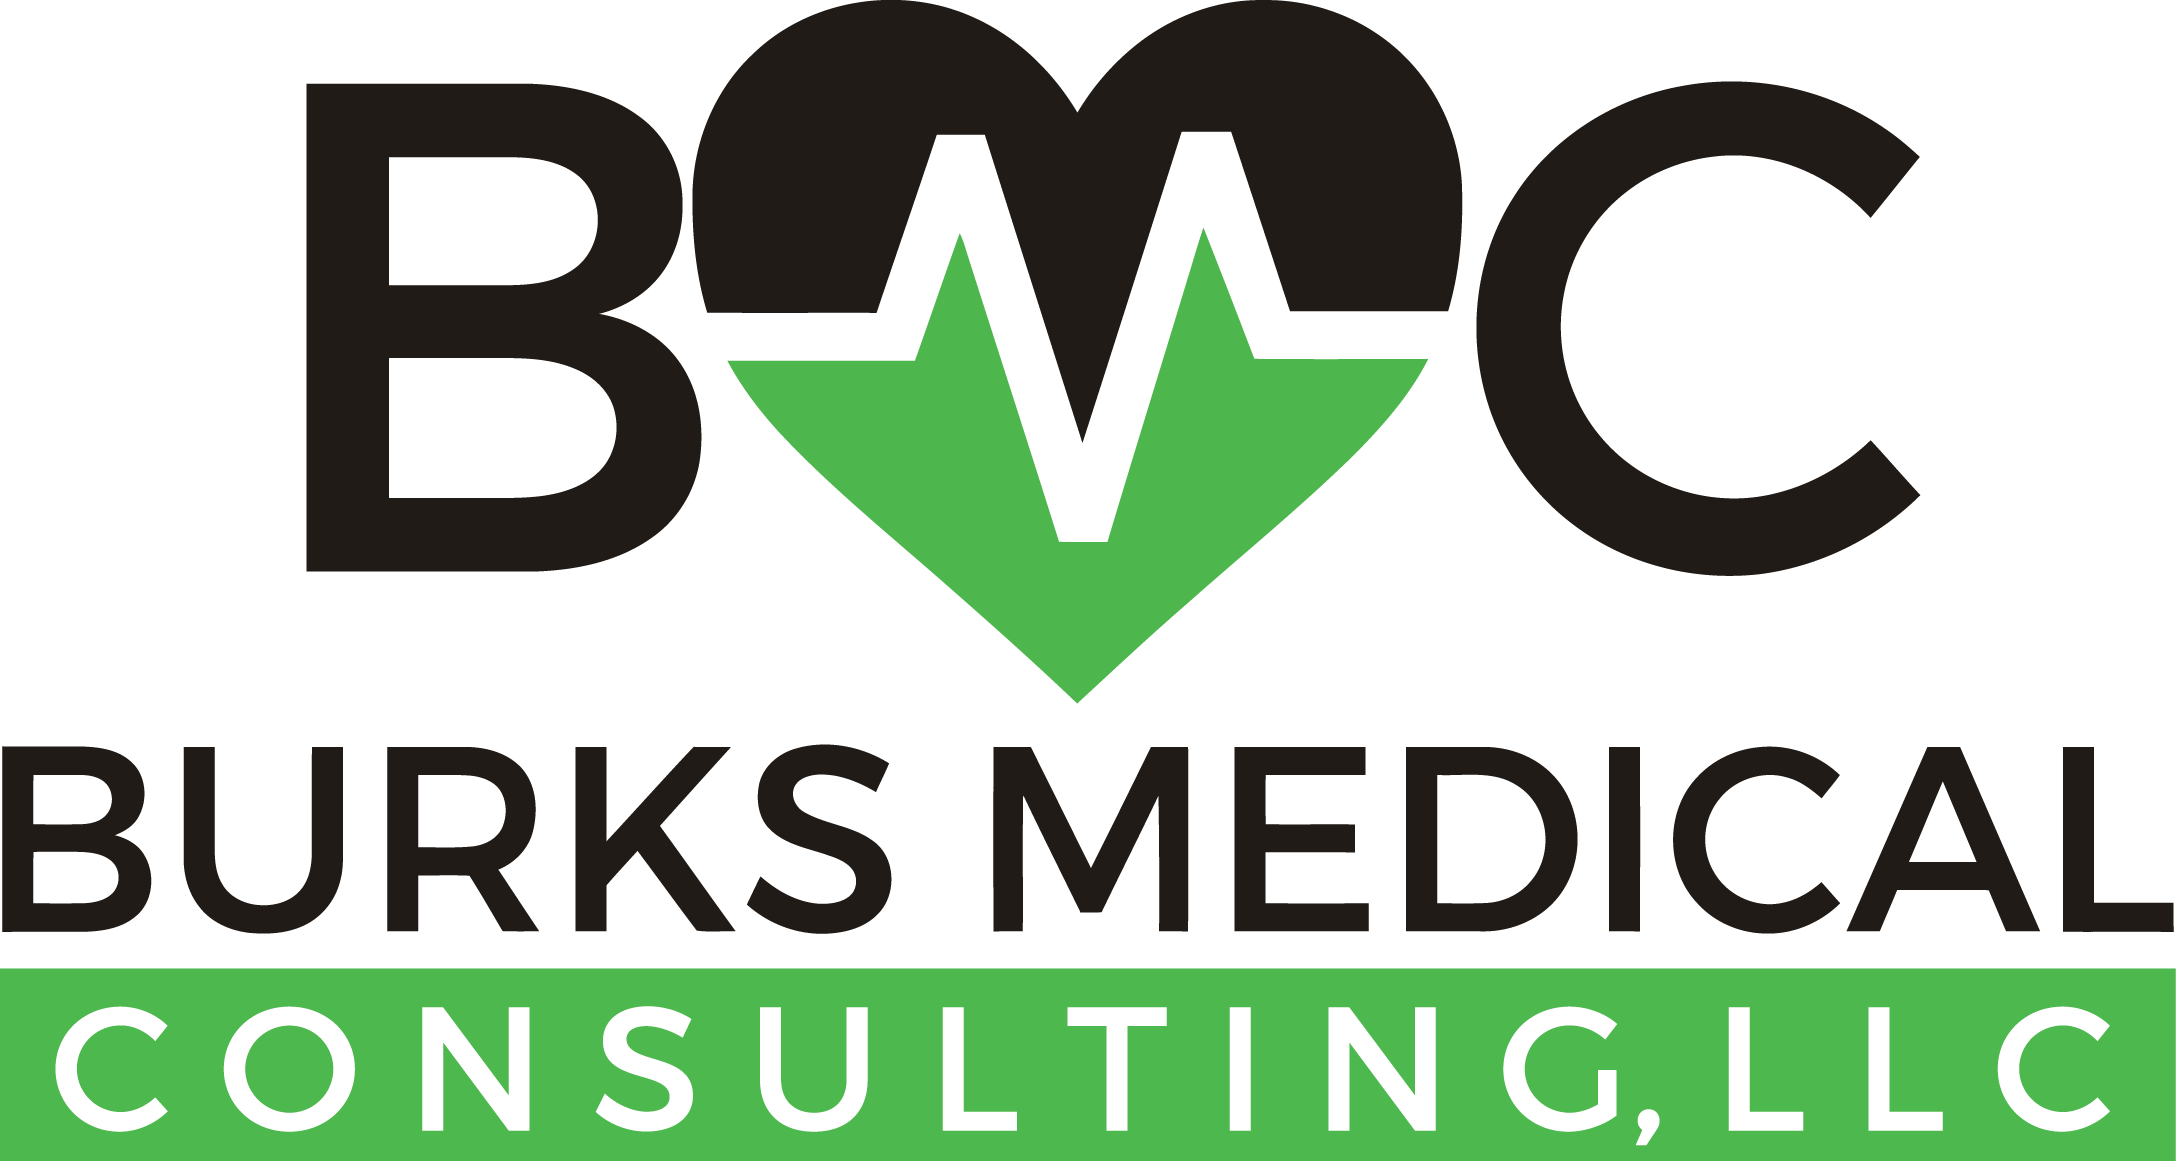 Burks Medical Consulting